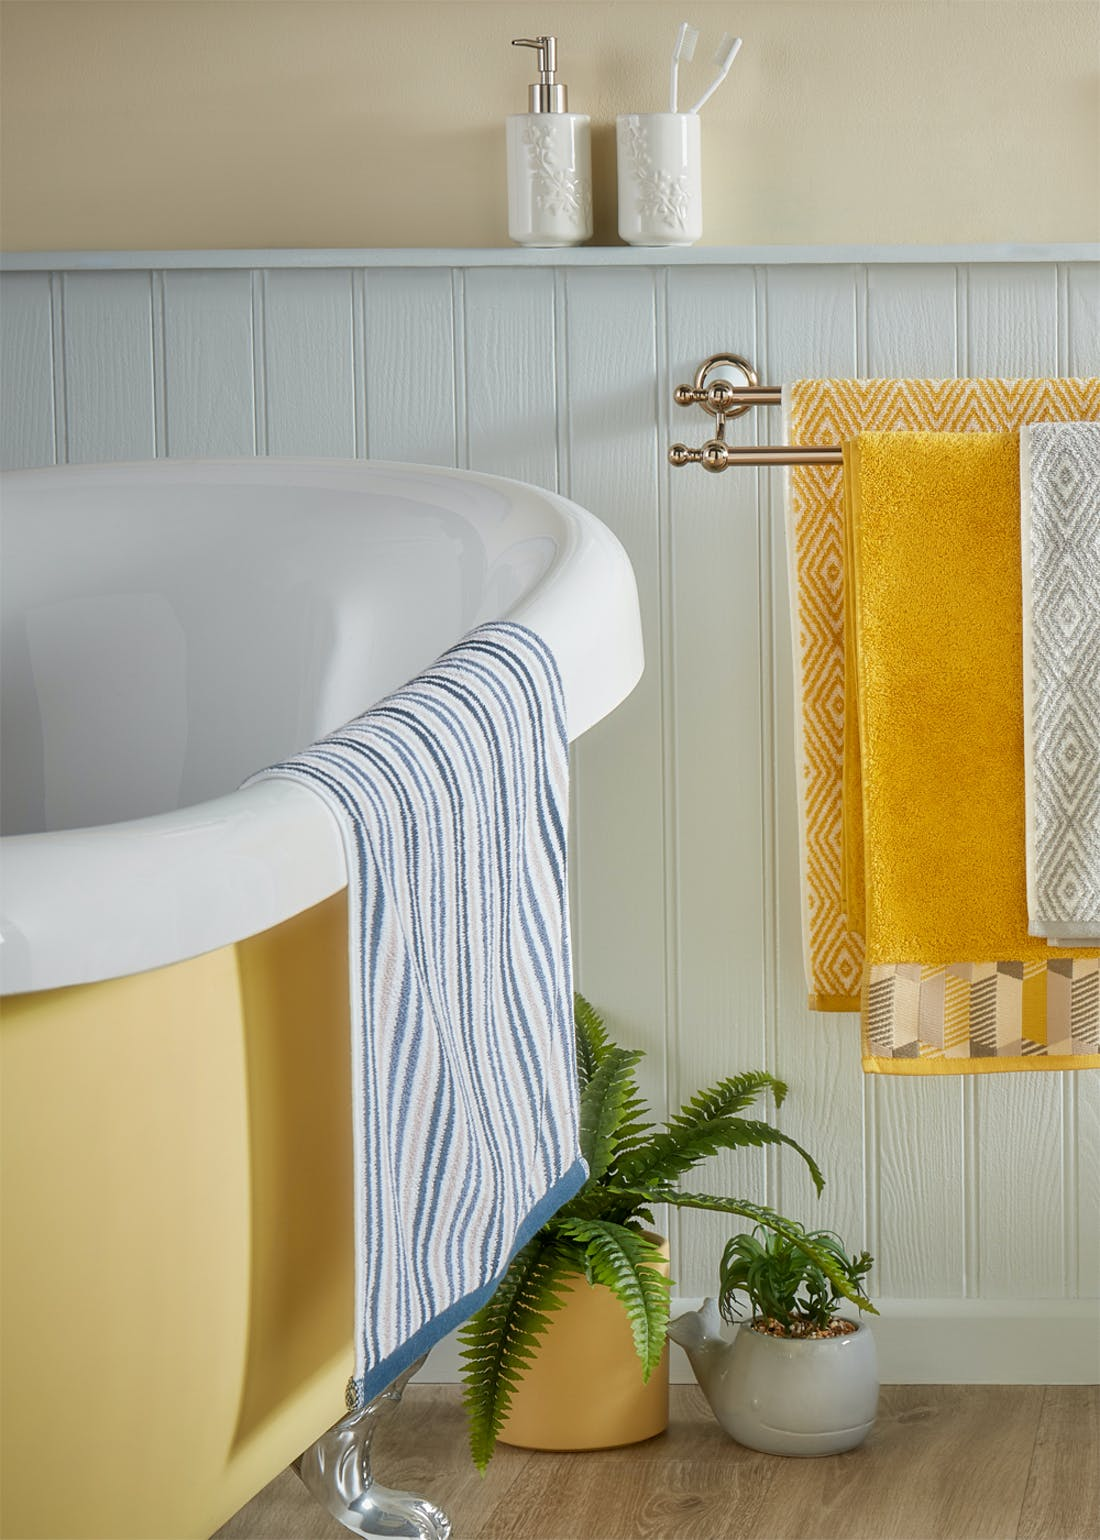 100% Cotton Stripe Towels